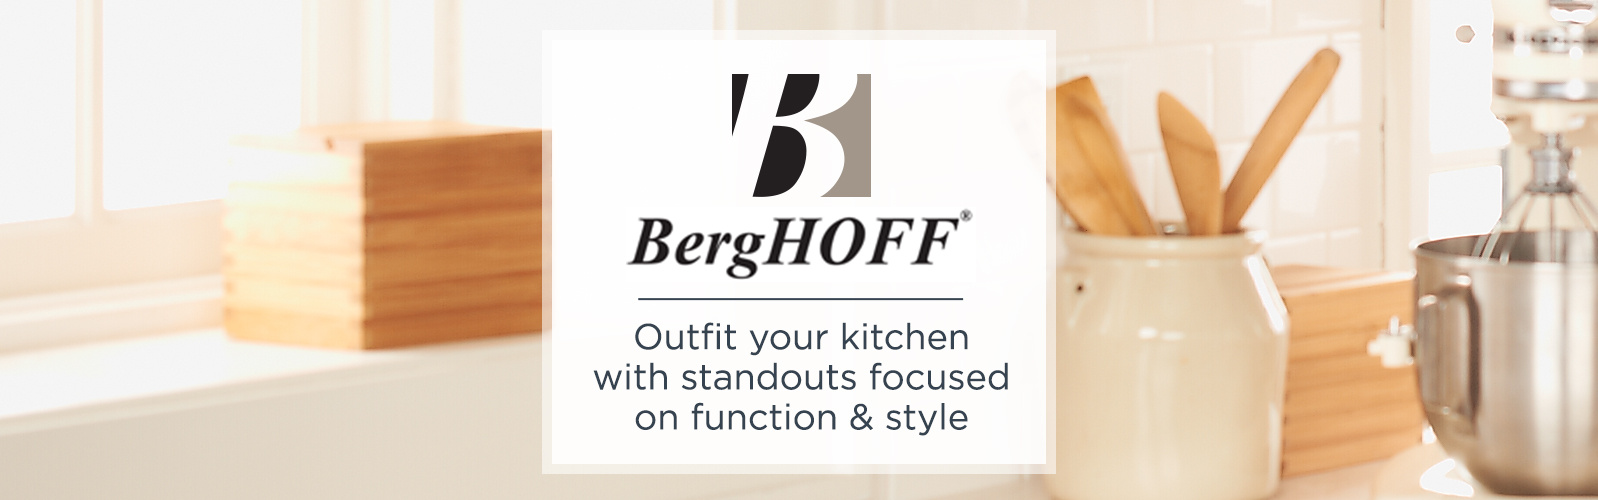 BergHOFF  — Outfit your kitchen with standouts focused on function & style